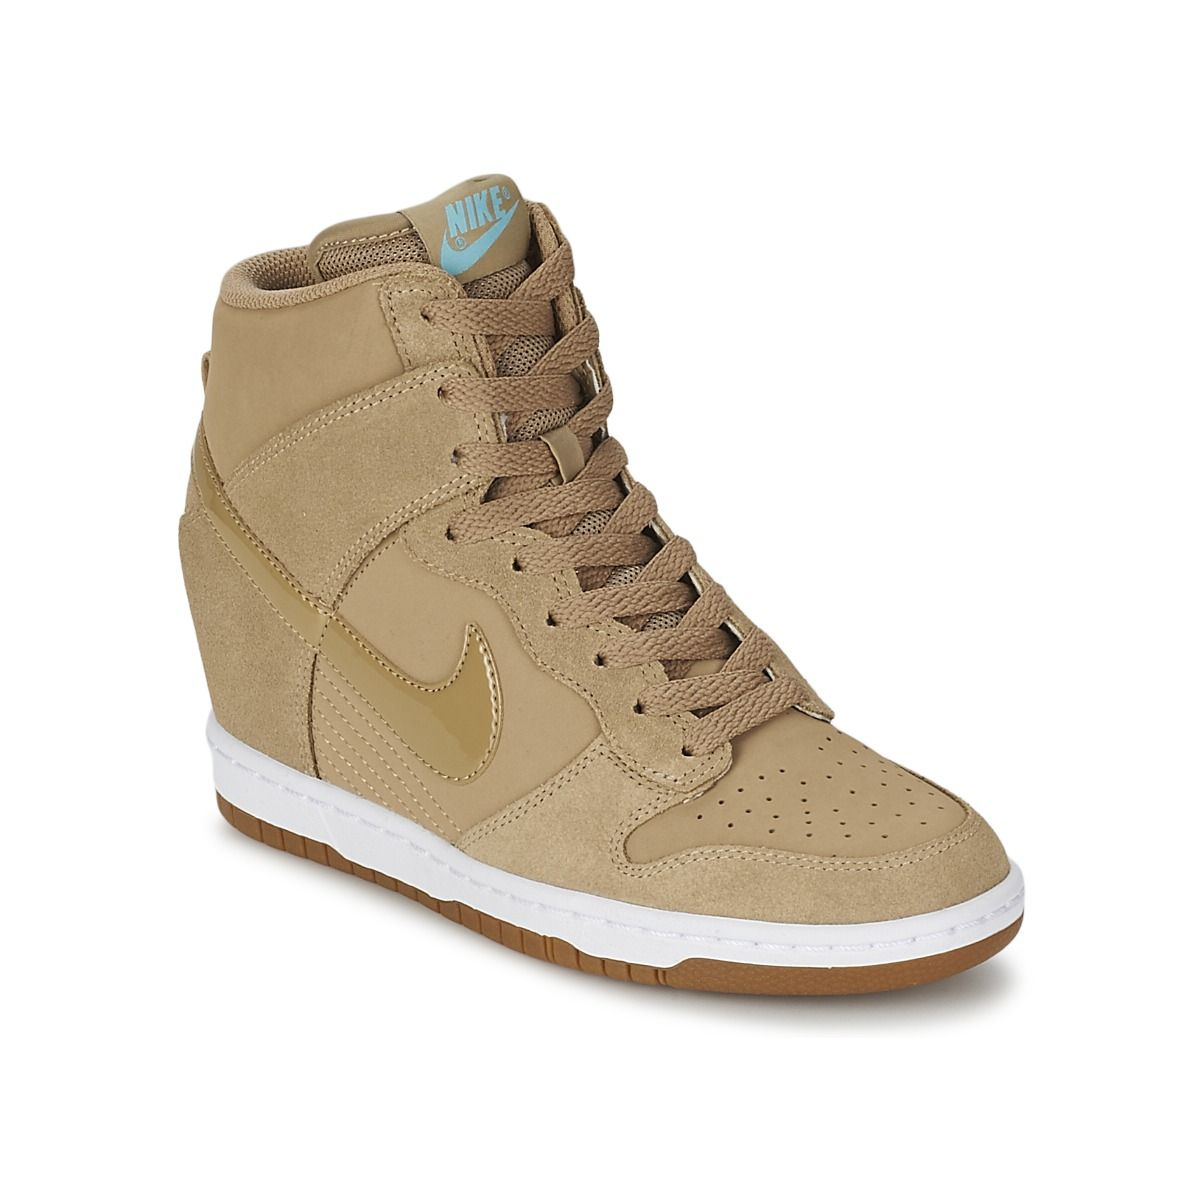 Baskets basses Nike DUNK SKY HI ESSENTIAL Beige | chaussures ...